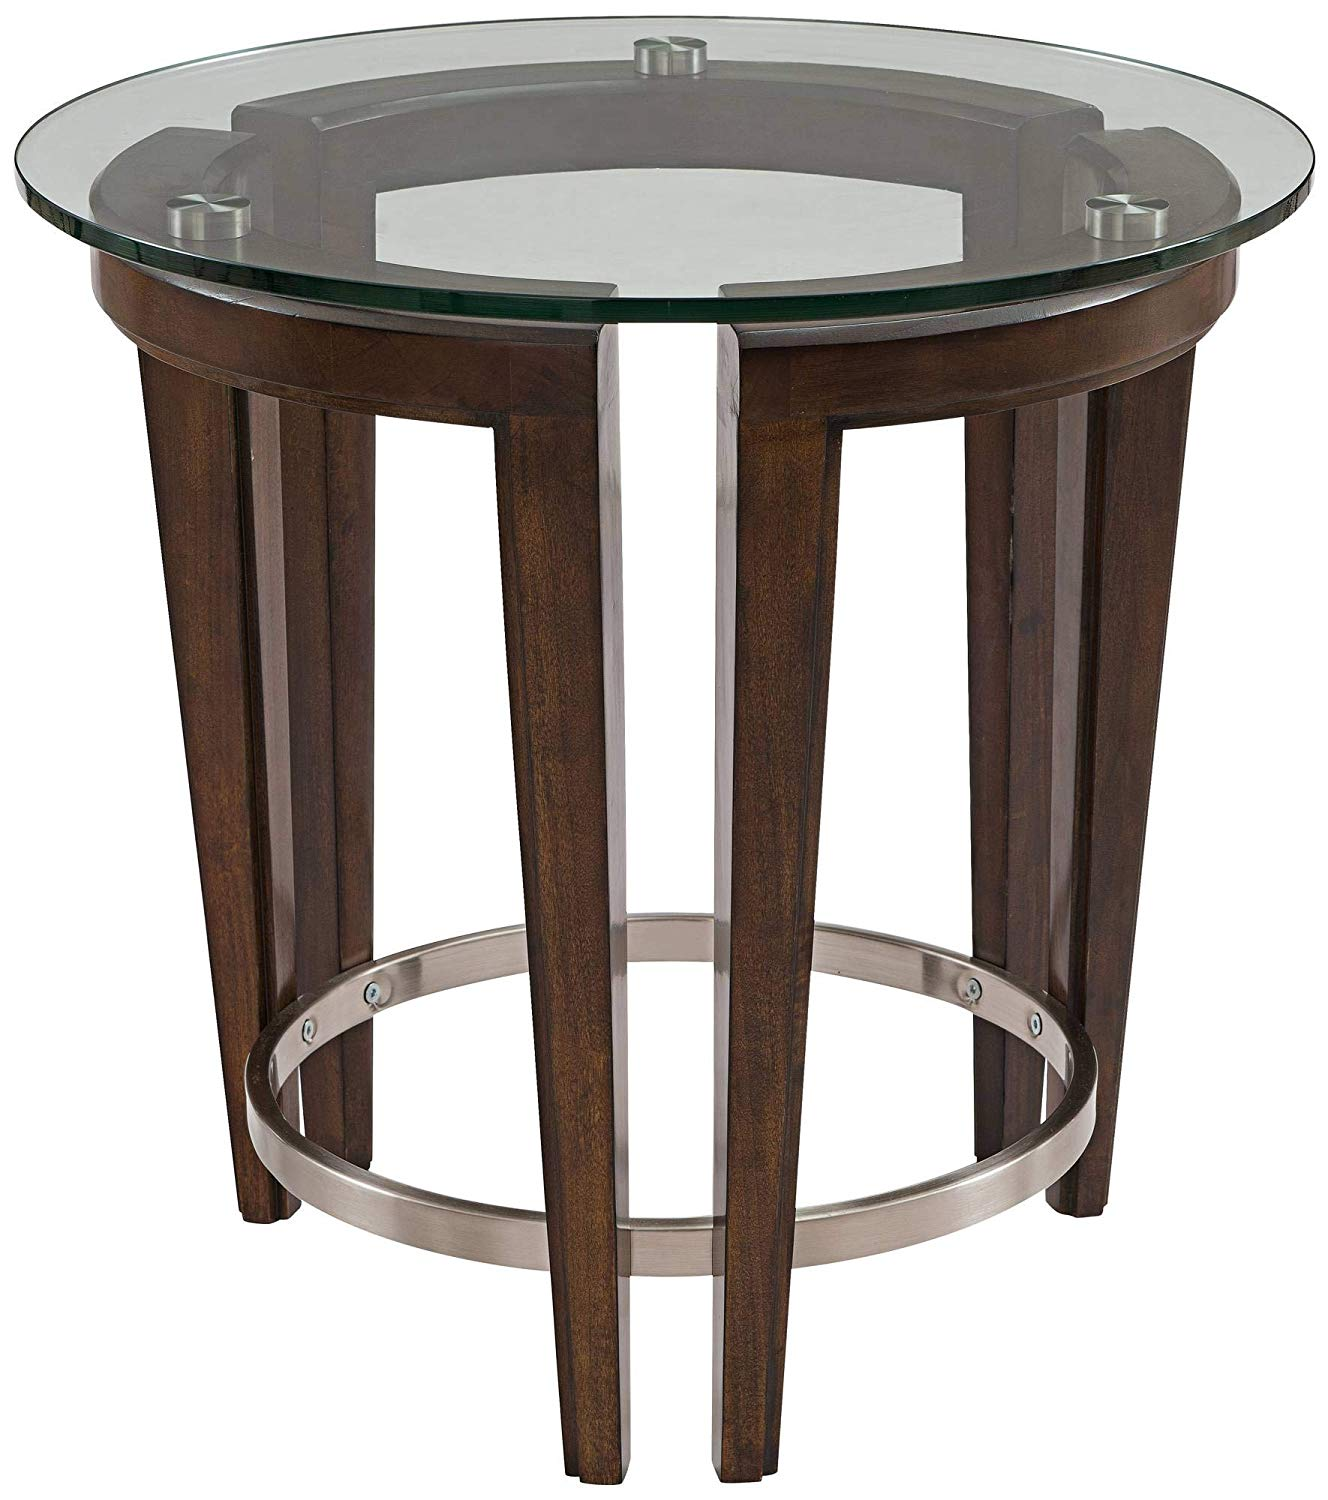 magnussen carmen round end table kitchen dining furniture tables thomasville headquarters plexiglass coffee top acme queens pillows for brown leather couch ethan allen secretary